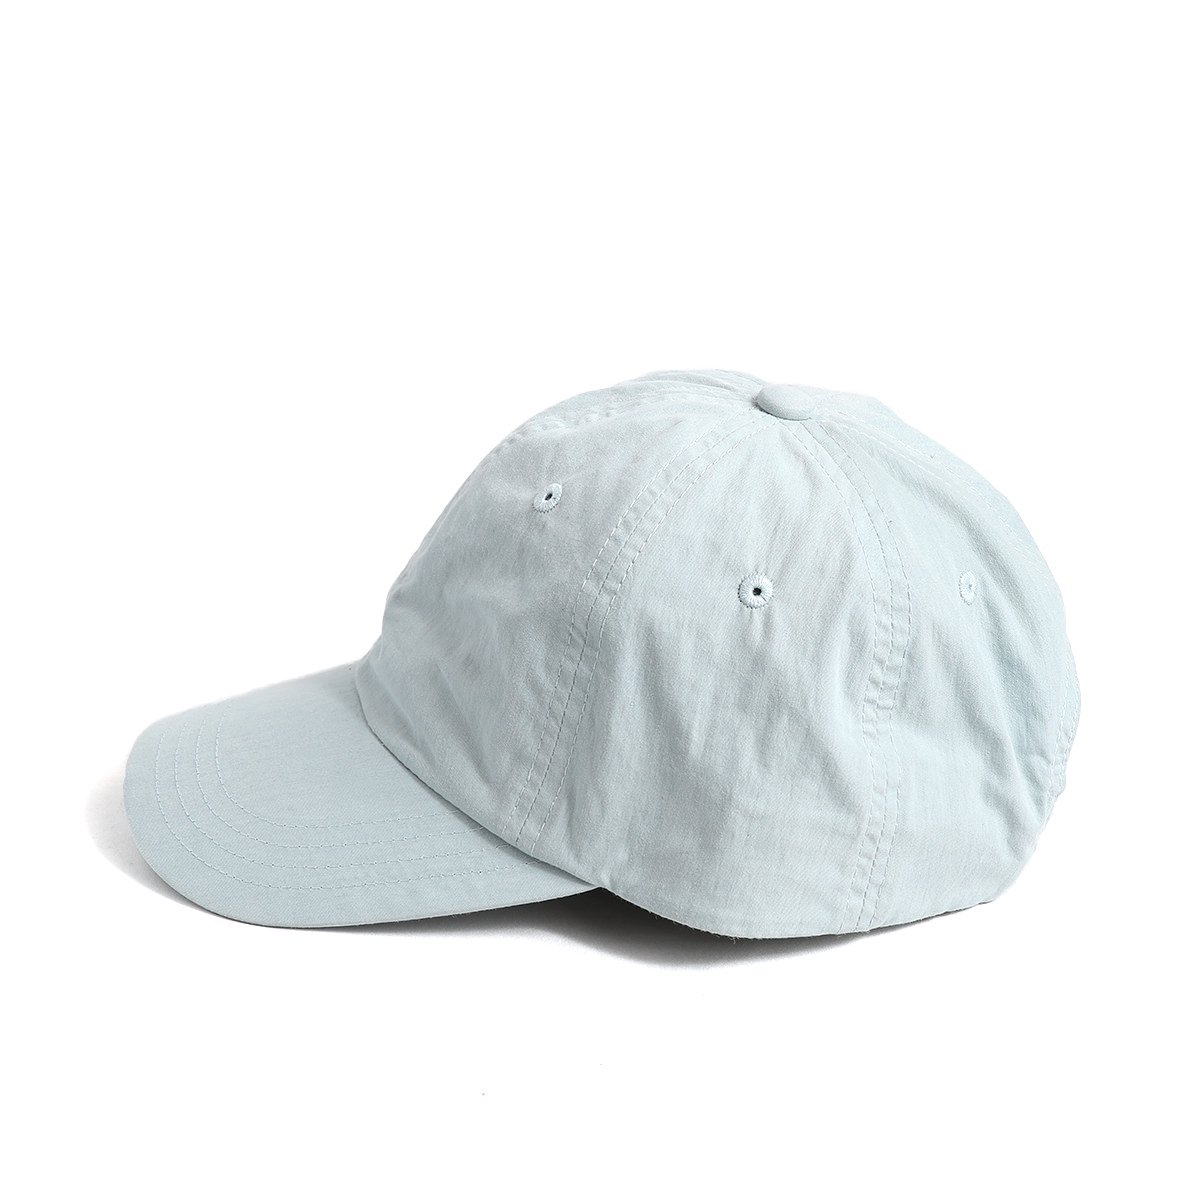 MAT Low Cap